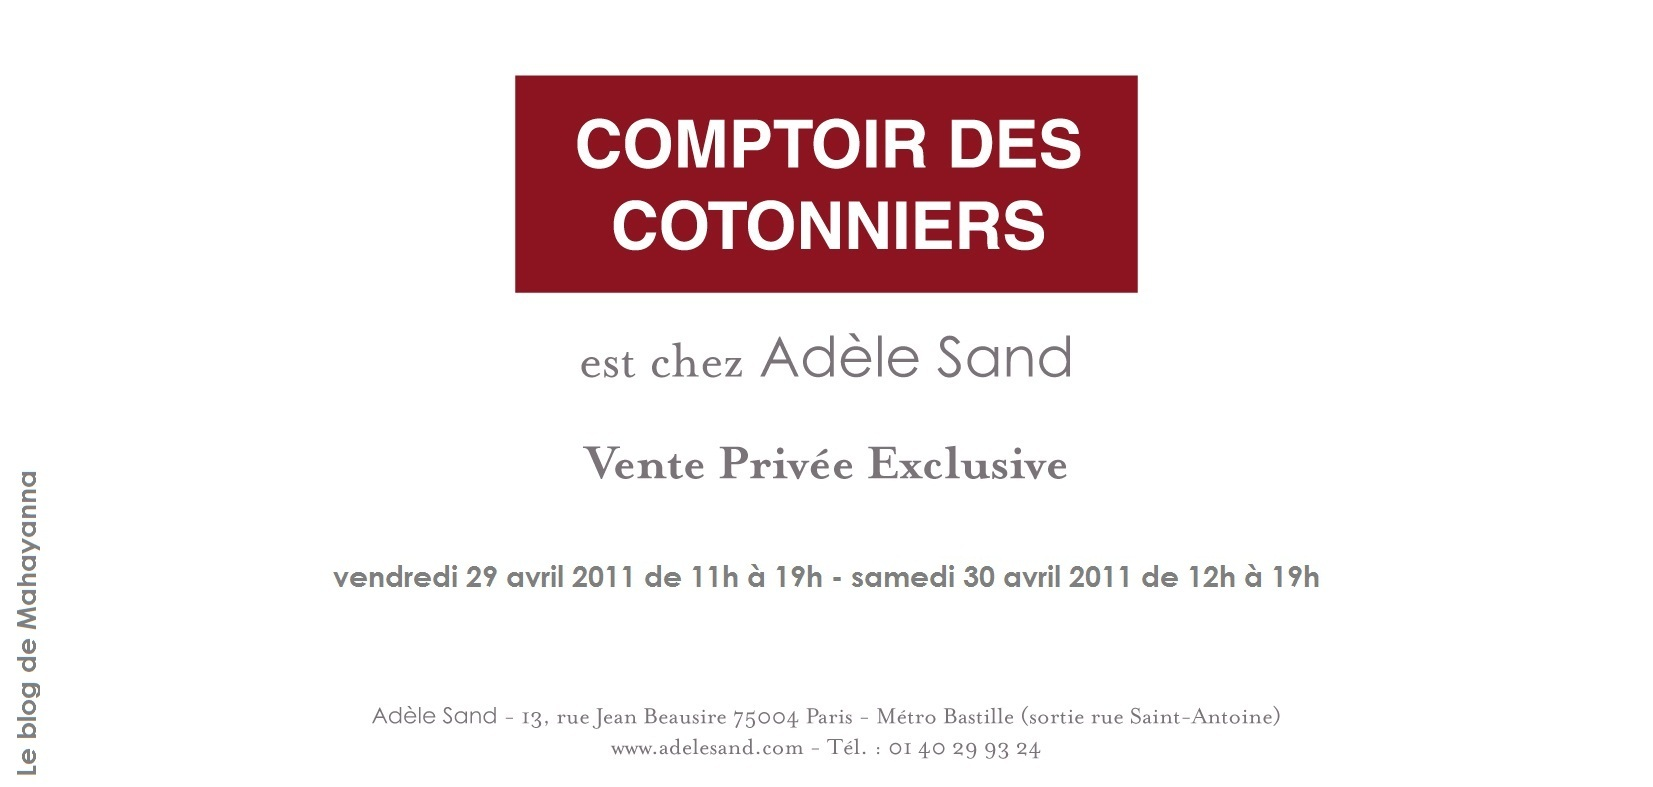 301 moved permanently - Ventes privees comptoir des cotonniers ...